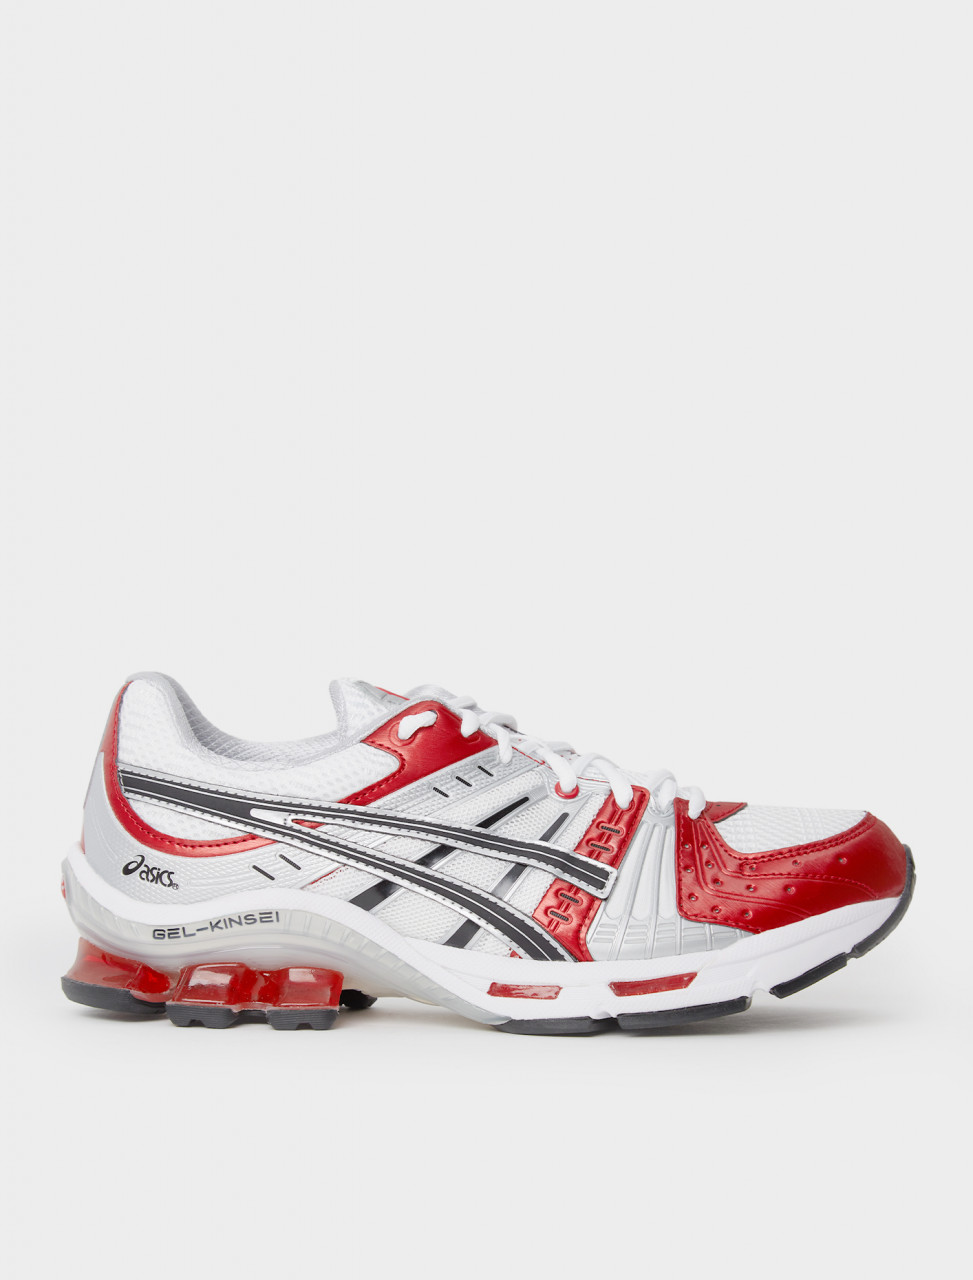 1021A117-600 ASICS GEL KINSEI OG RED BLACK